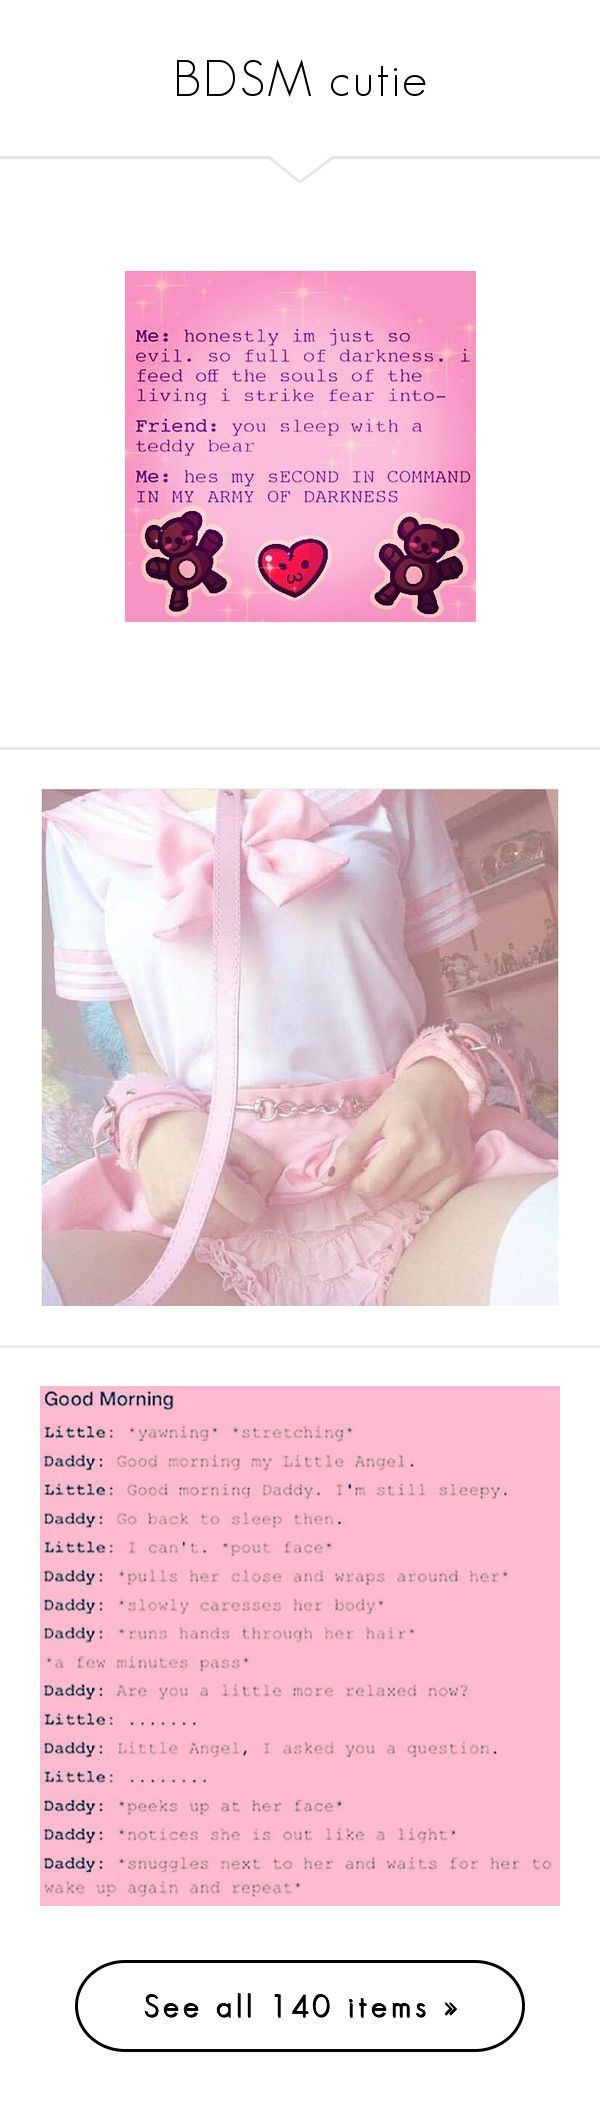 """""""BDSM cutie"""" by jennyryanfecitt ❤ liked on Polyvore featuring text, daddy kink, backgrounds, phrase, quotes, saying, fills, pictures, daddy and ddlg"""